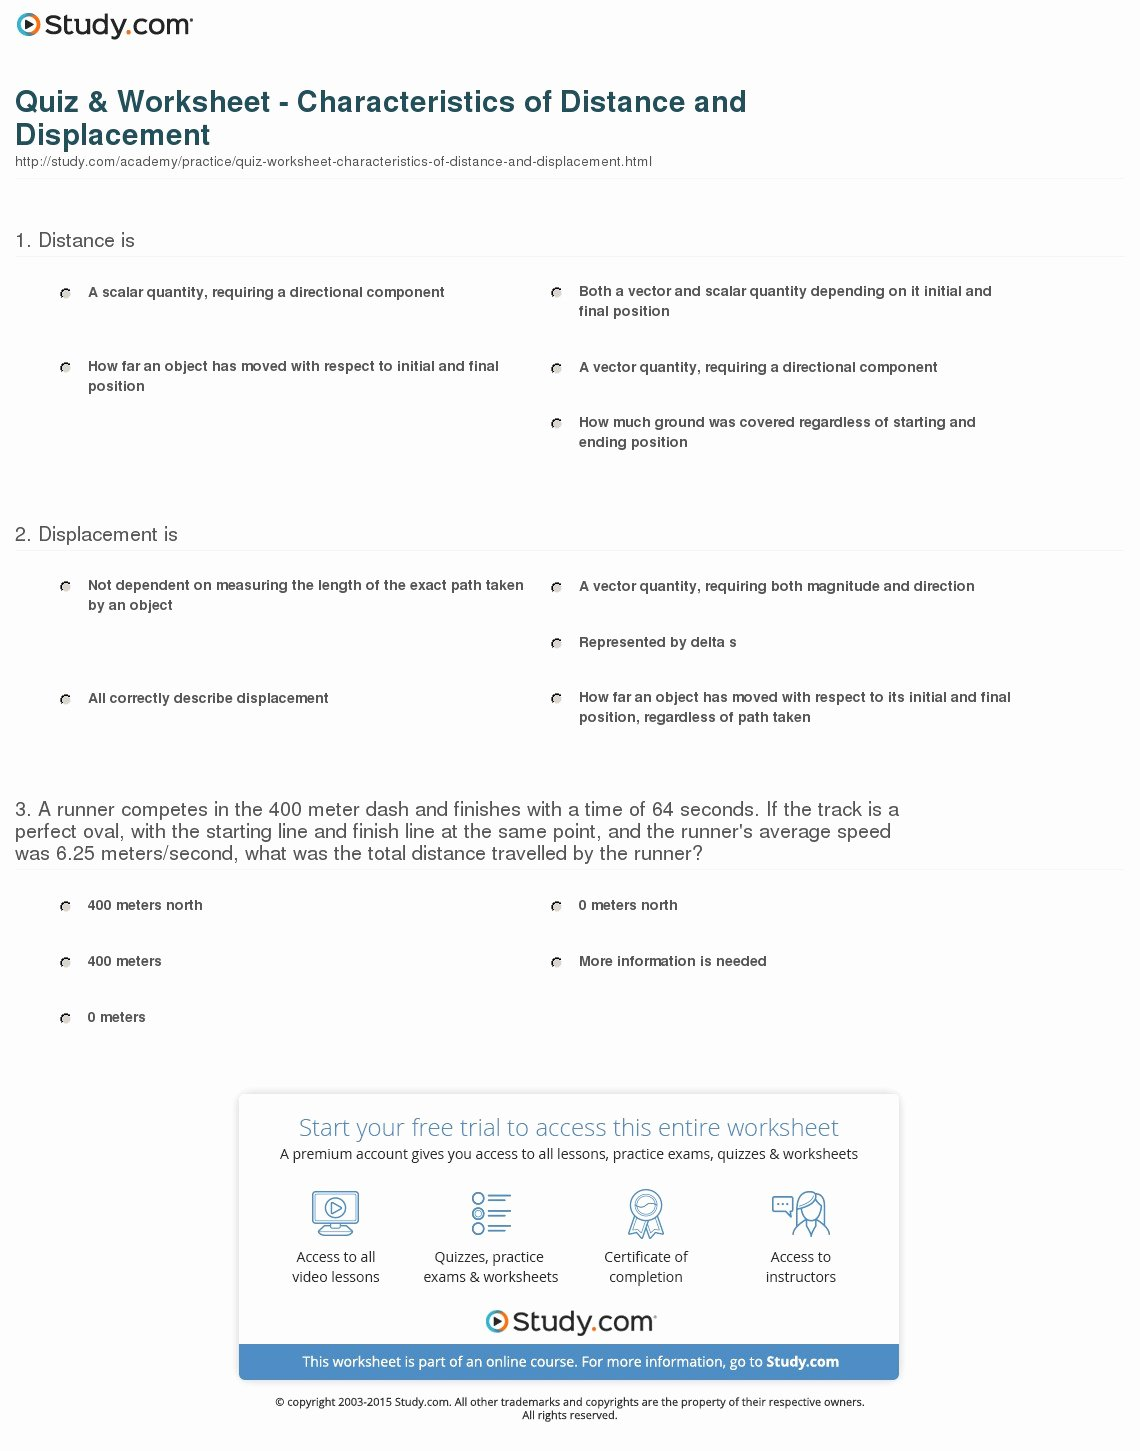 Distance Vs Displacement Worksheet Unique Quiz & Worksheet Characteristics Of Distance and